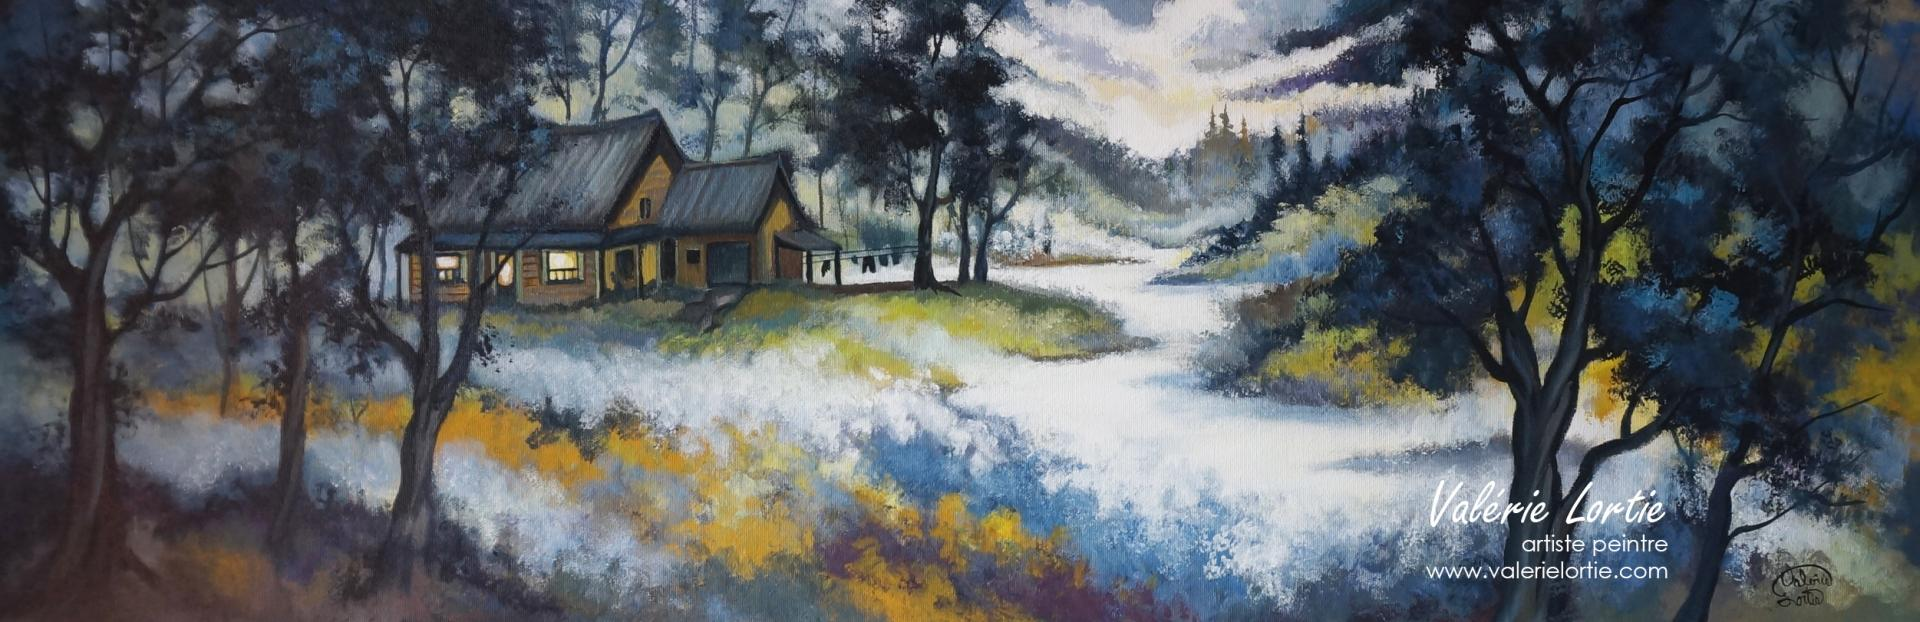 Doux refuge, 12 x 36in